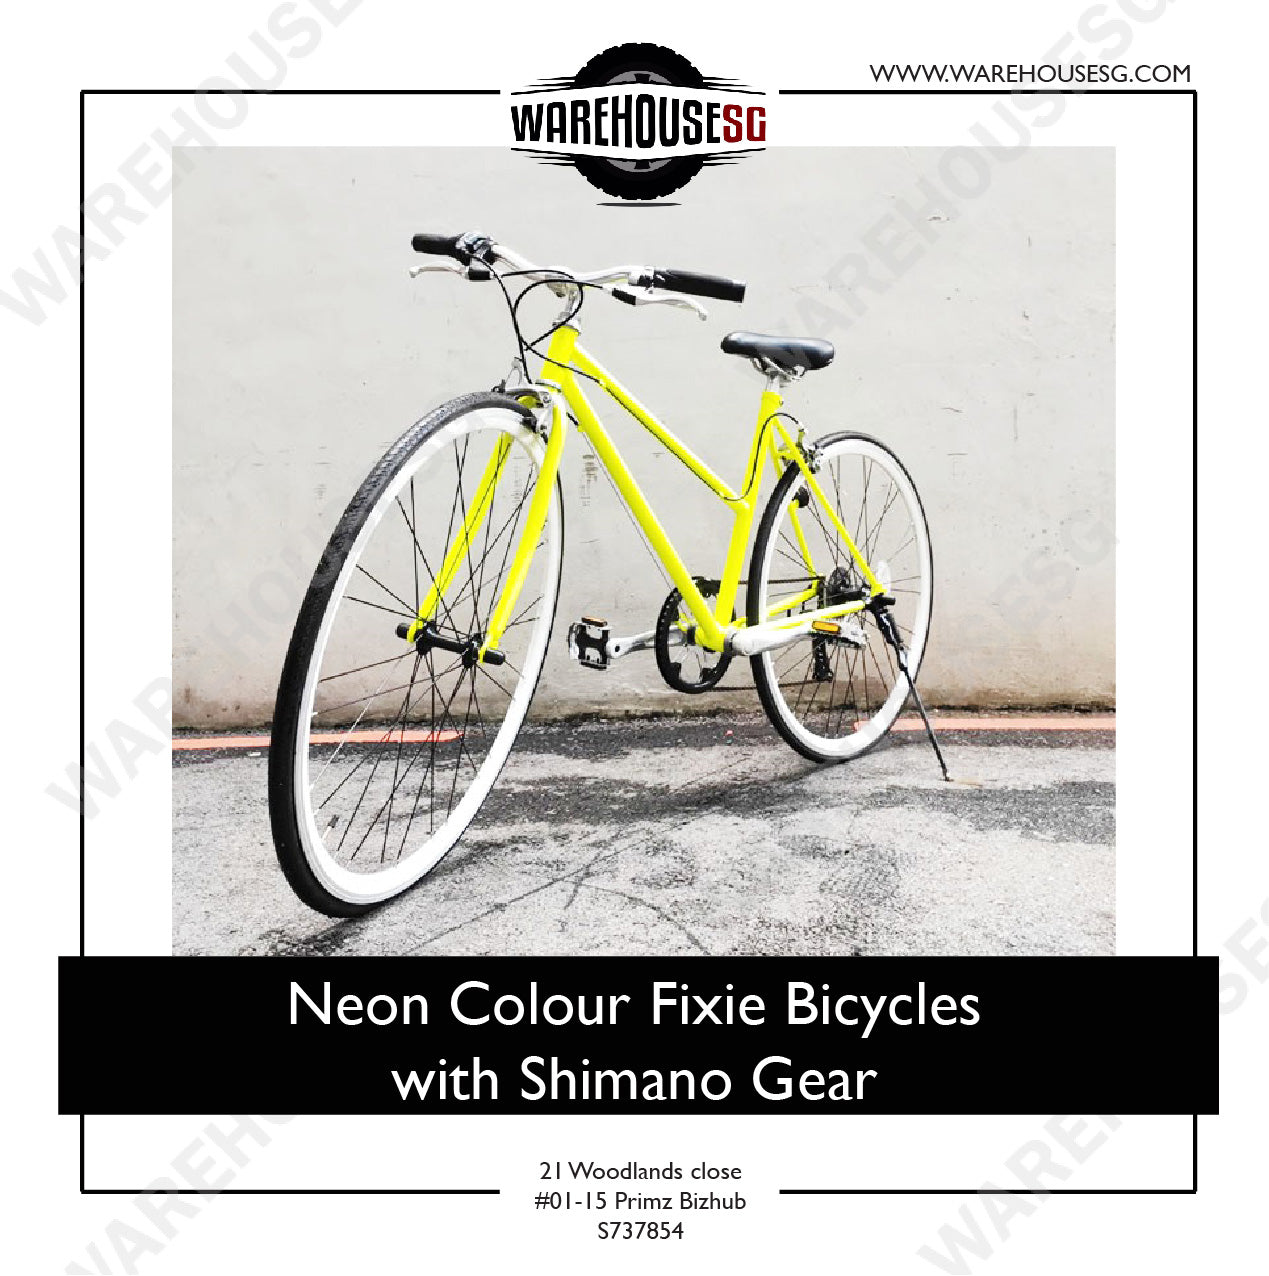 Neon Colour Fixie Bicycles with Shimano Gear